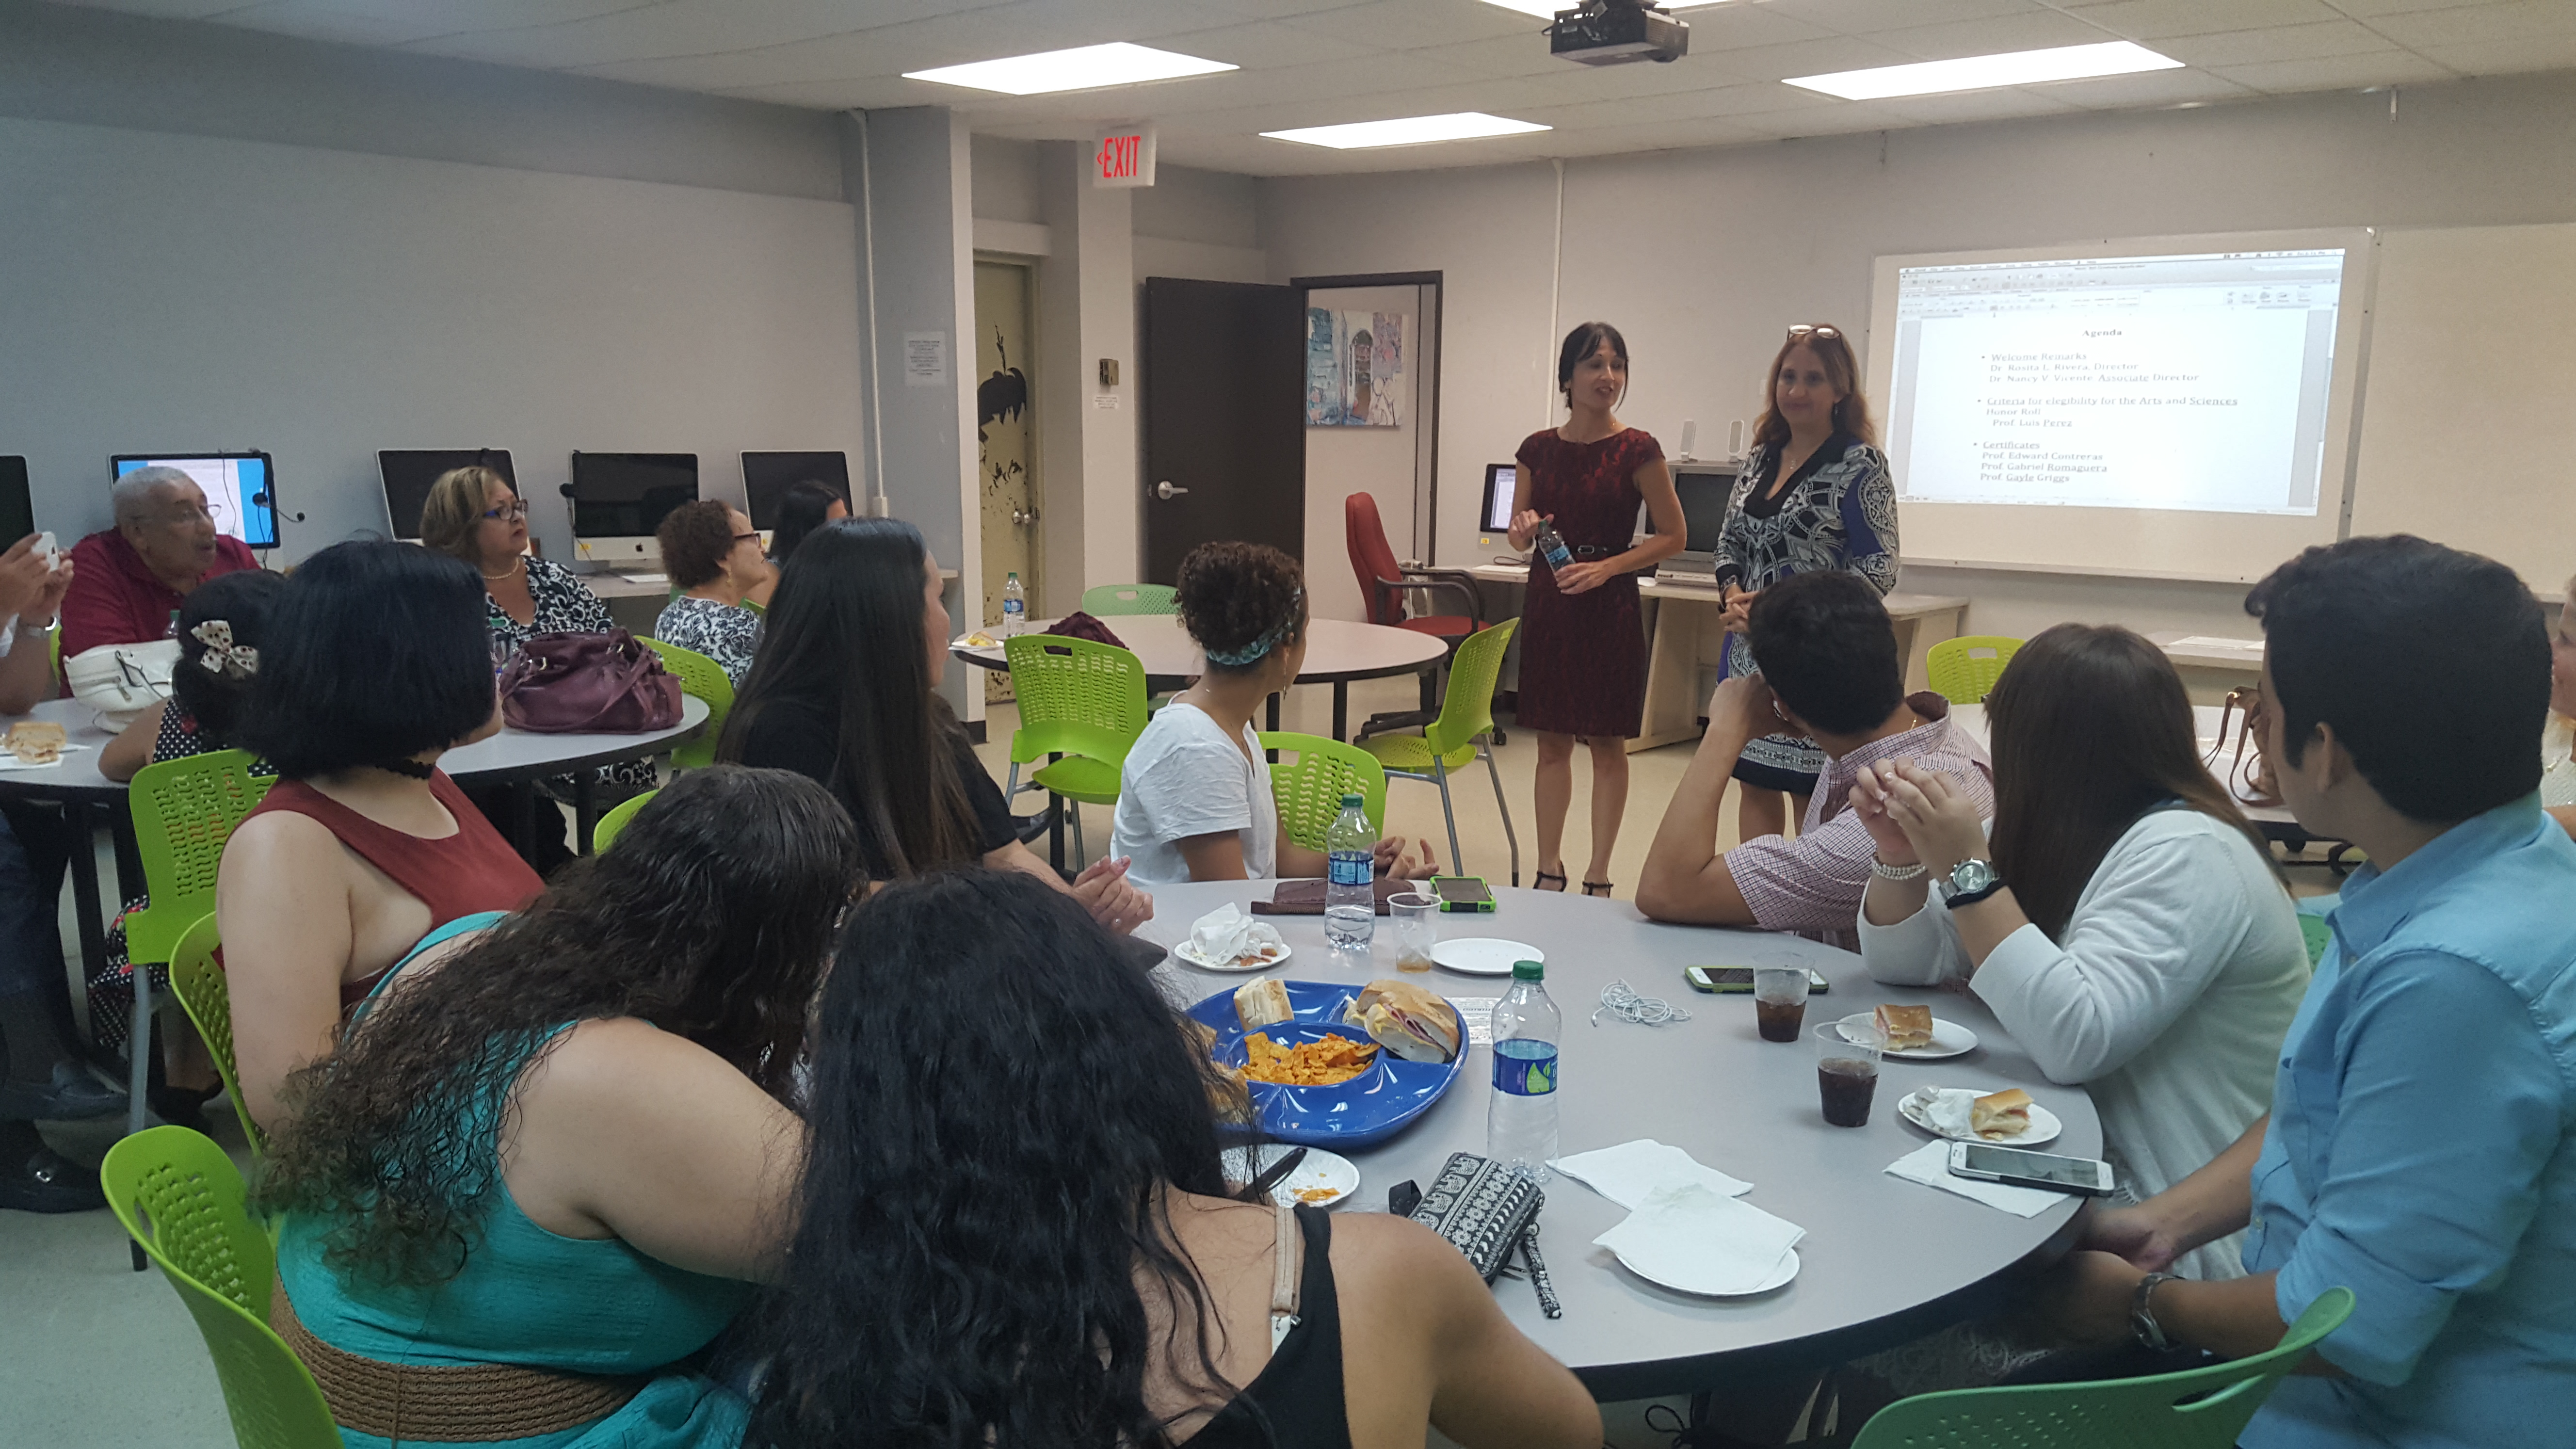 Two college professors speaking in front of a room at the Honor Roll Students Celebration. Students are sitting at the tables and there are snack trays on top of the tables.